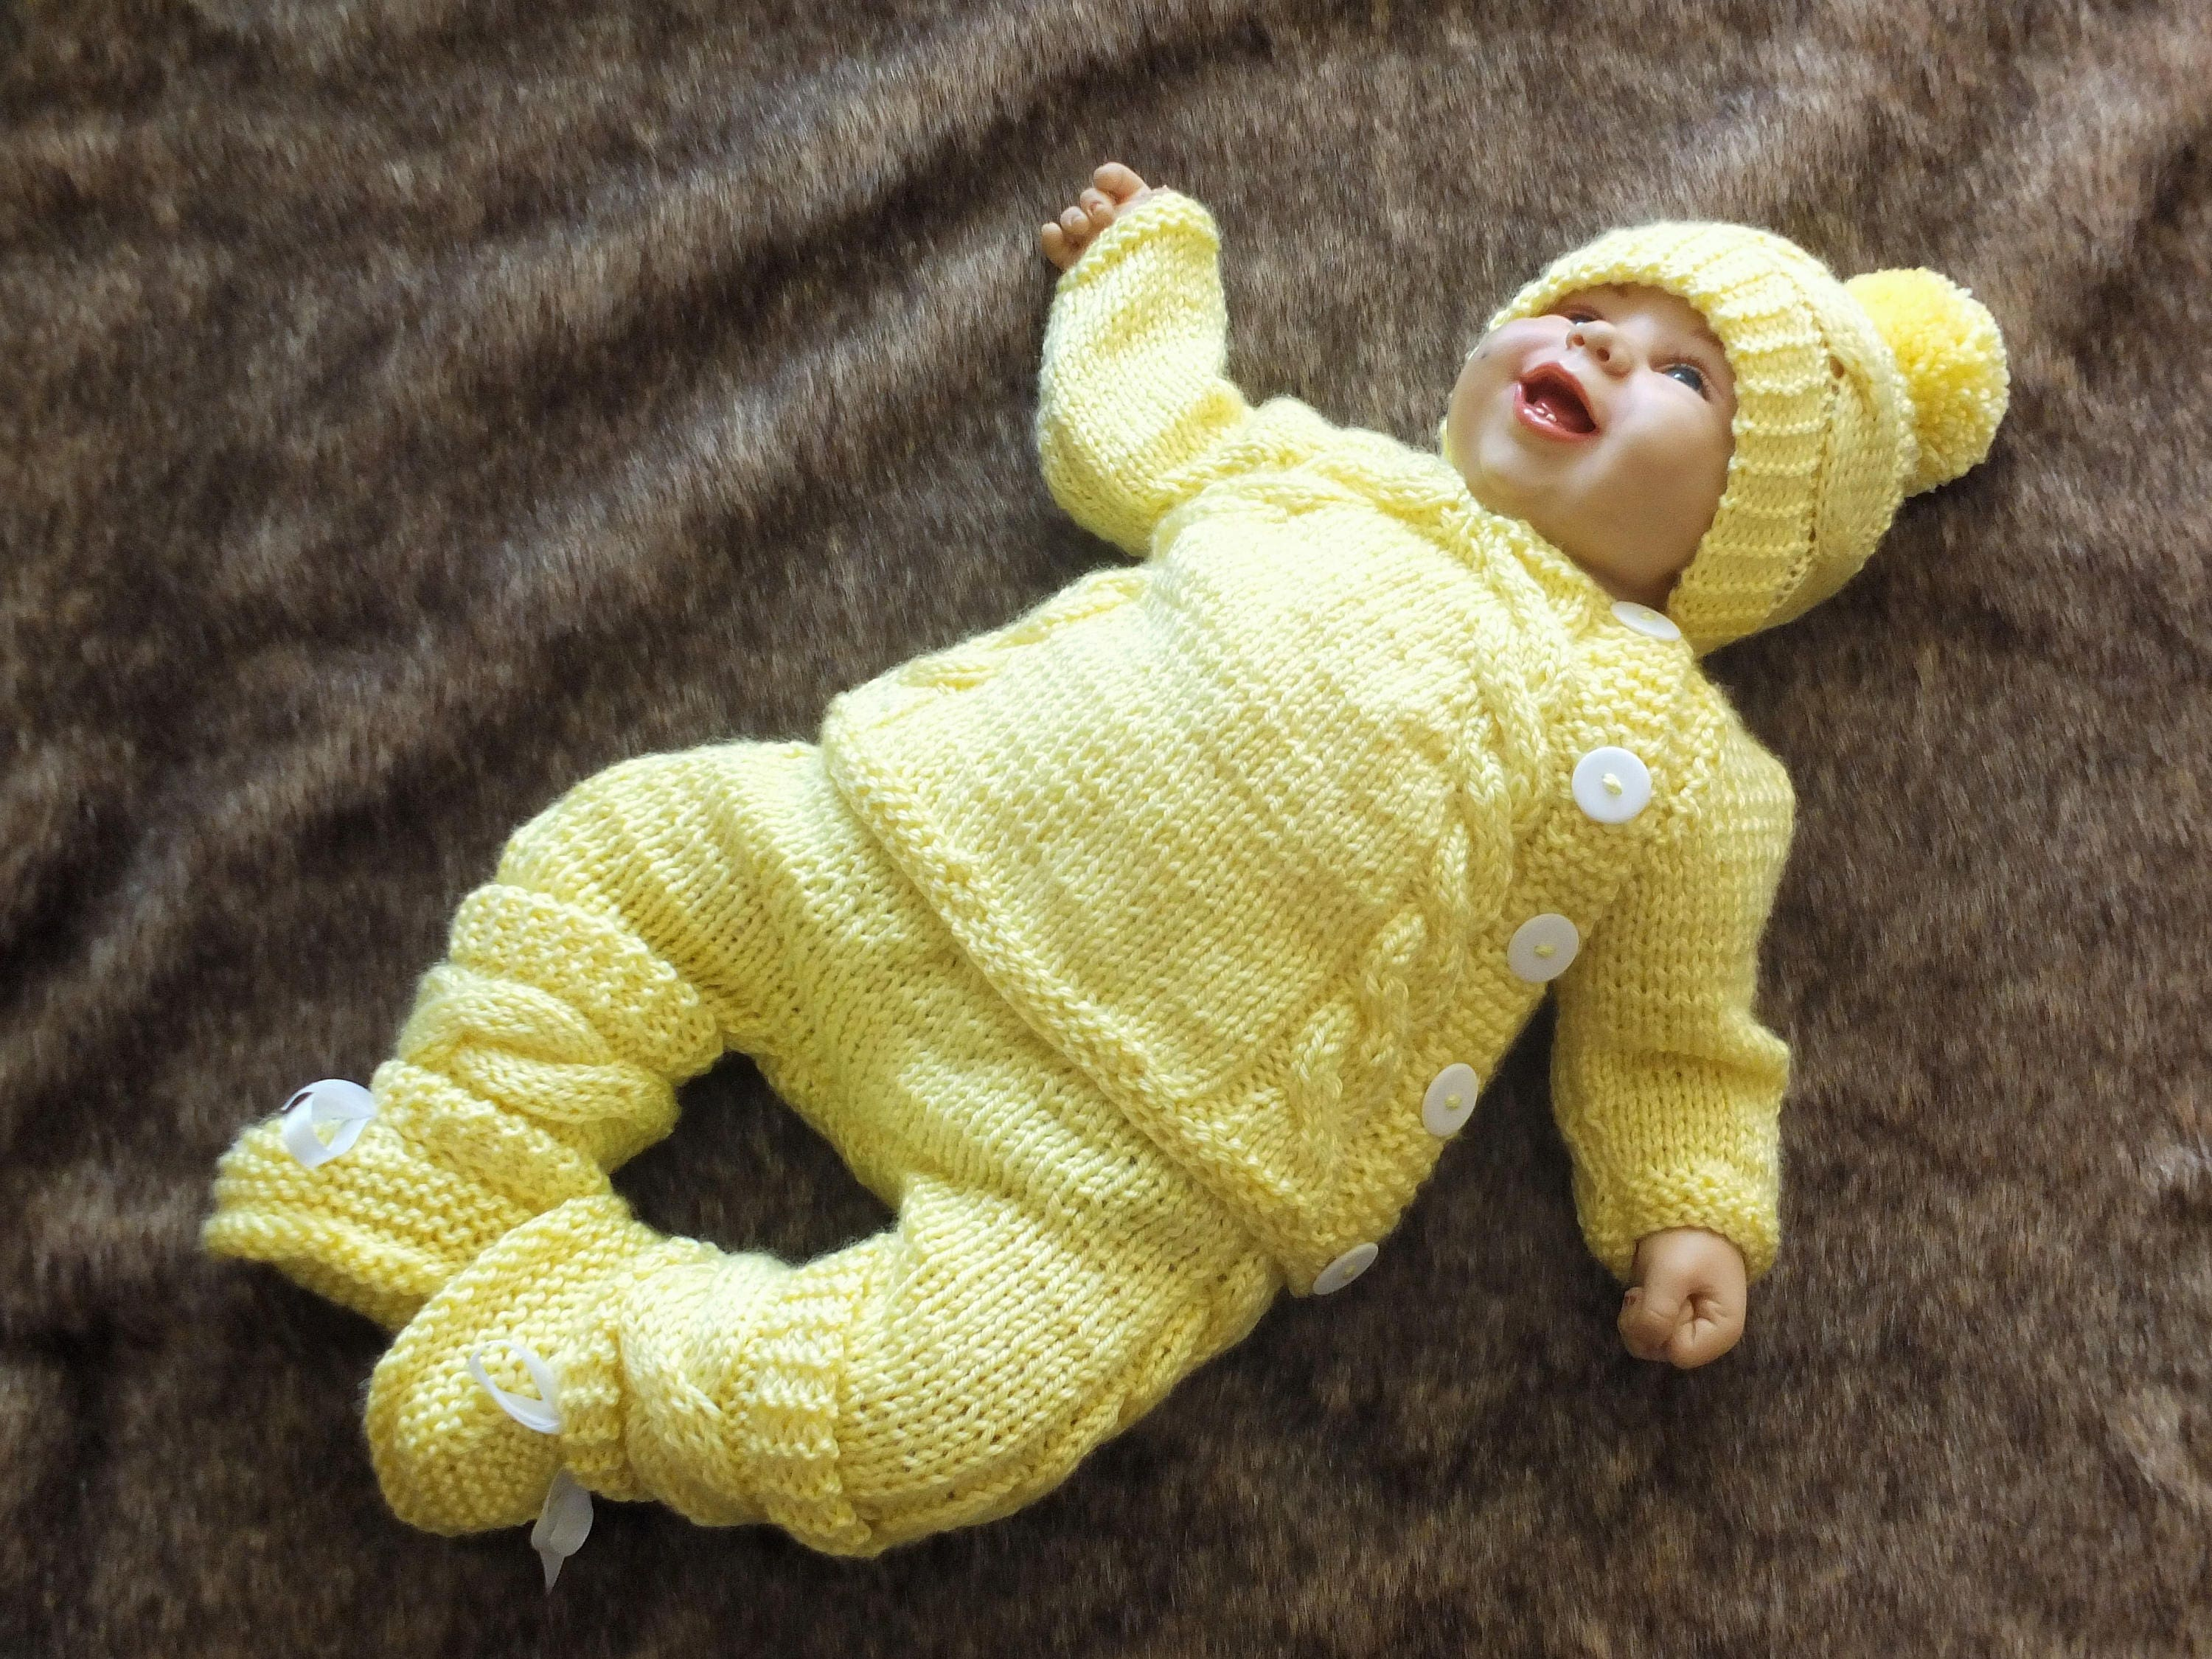 Knitted Yellow Baby ing home outfit Knit Baby Outfit Knitted